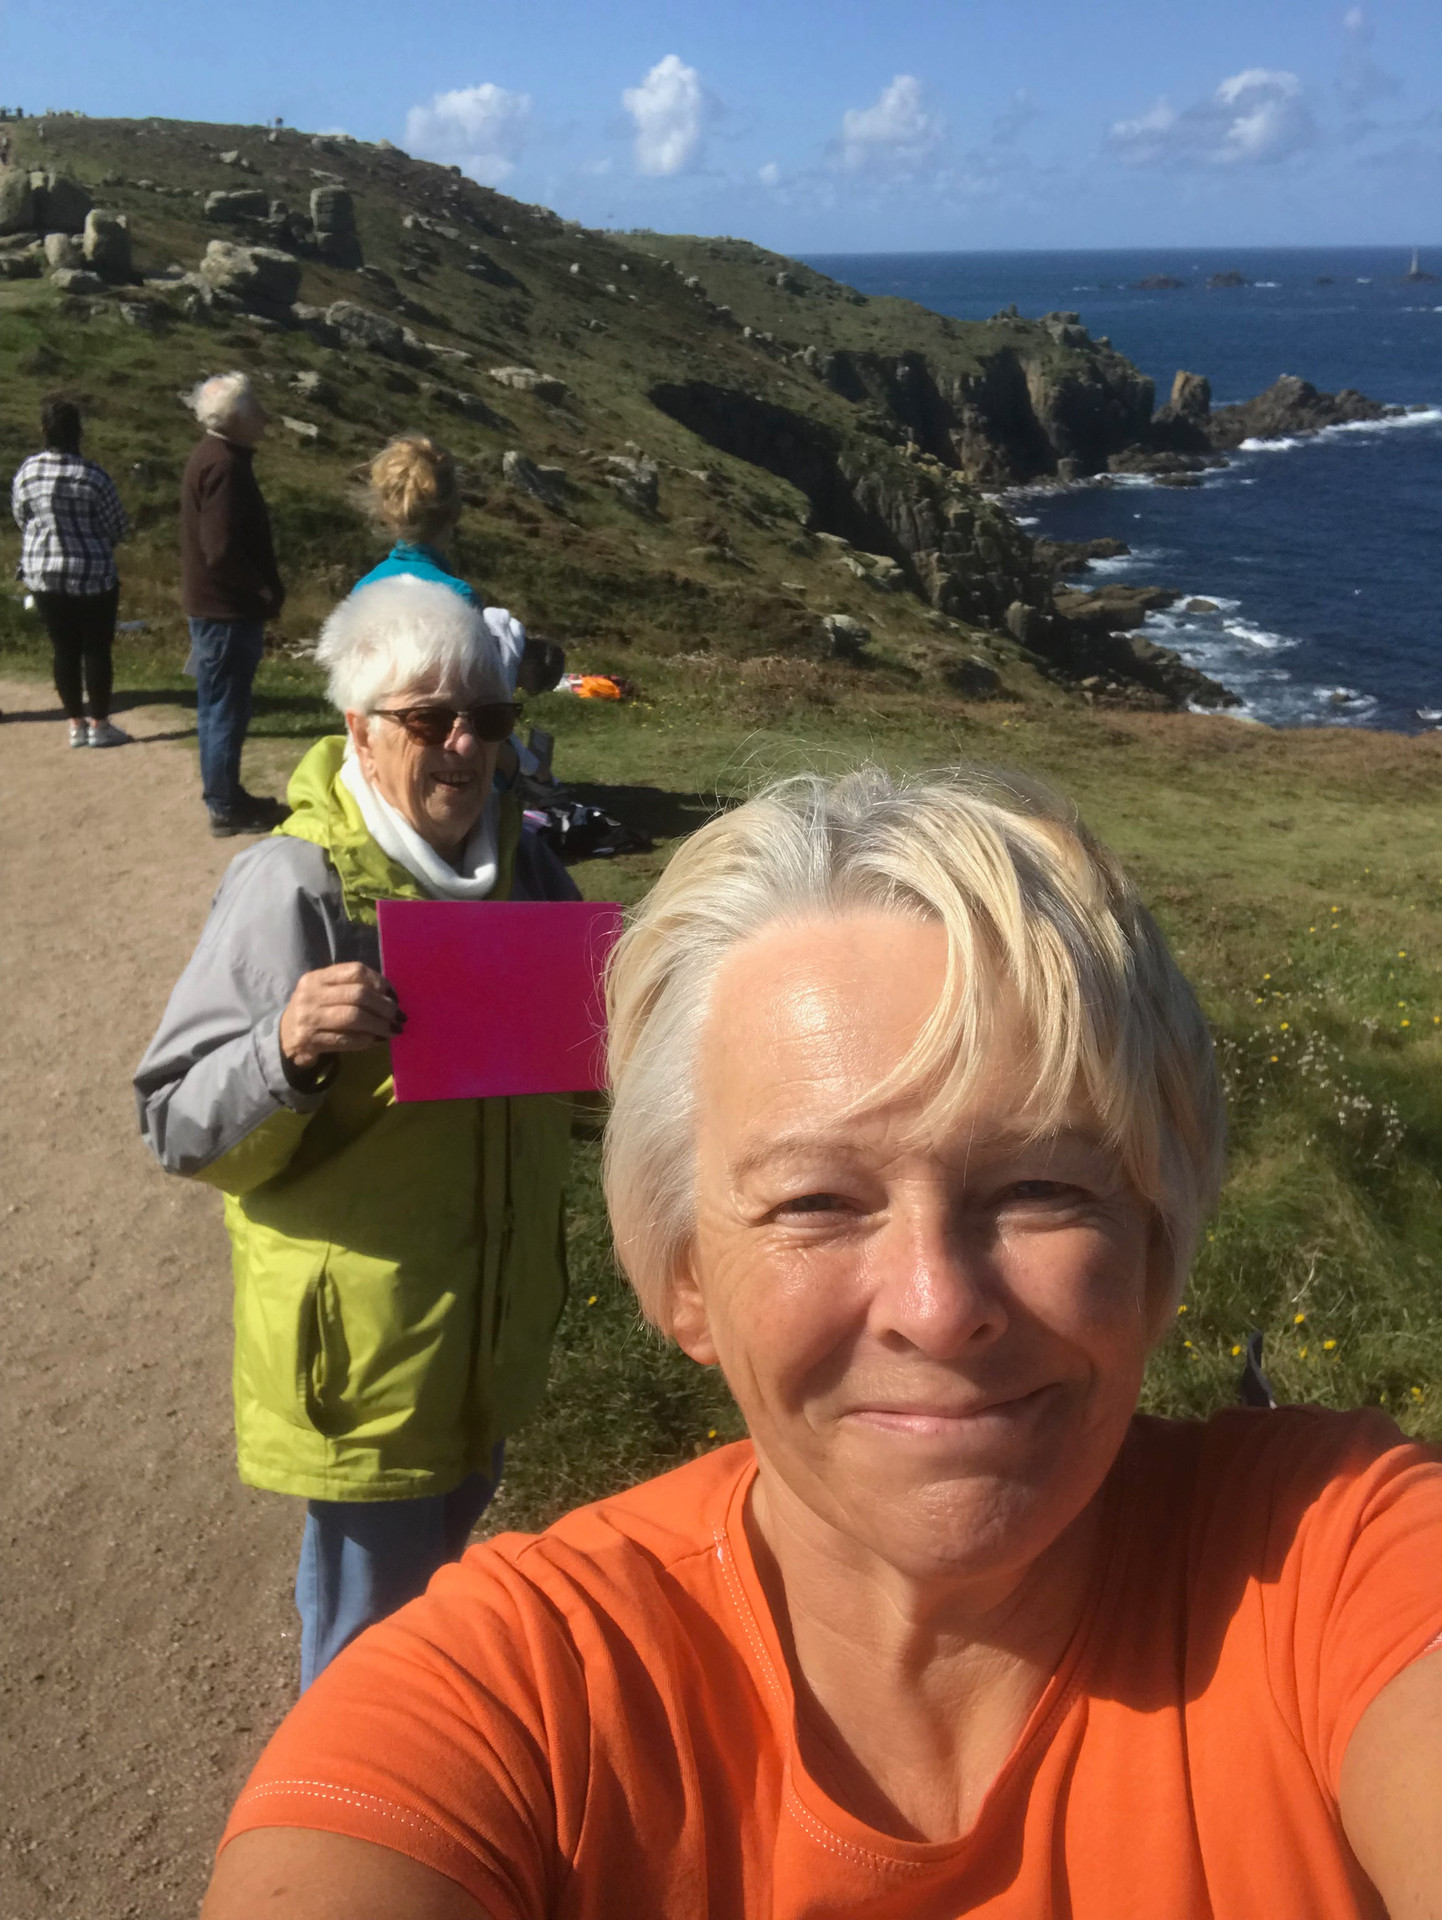 Standing on the coastal path to mark the painting line